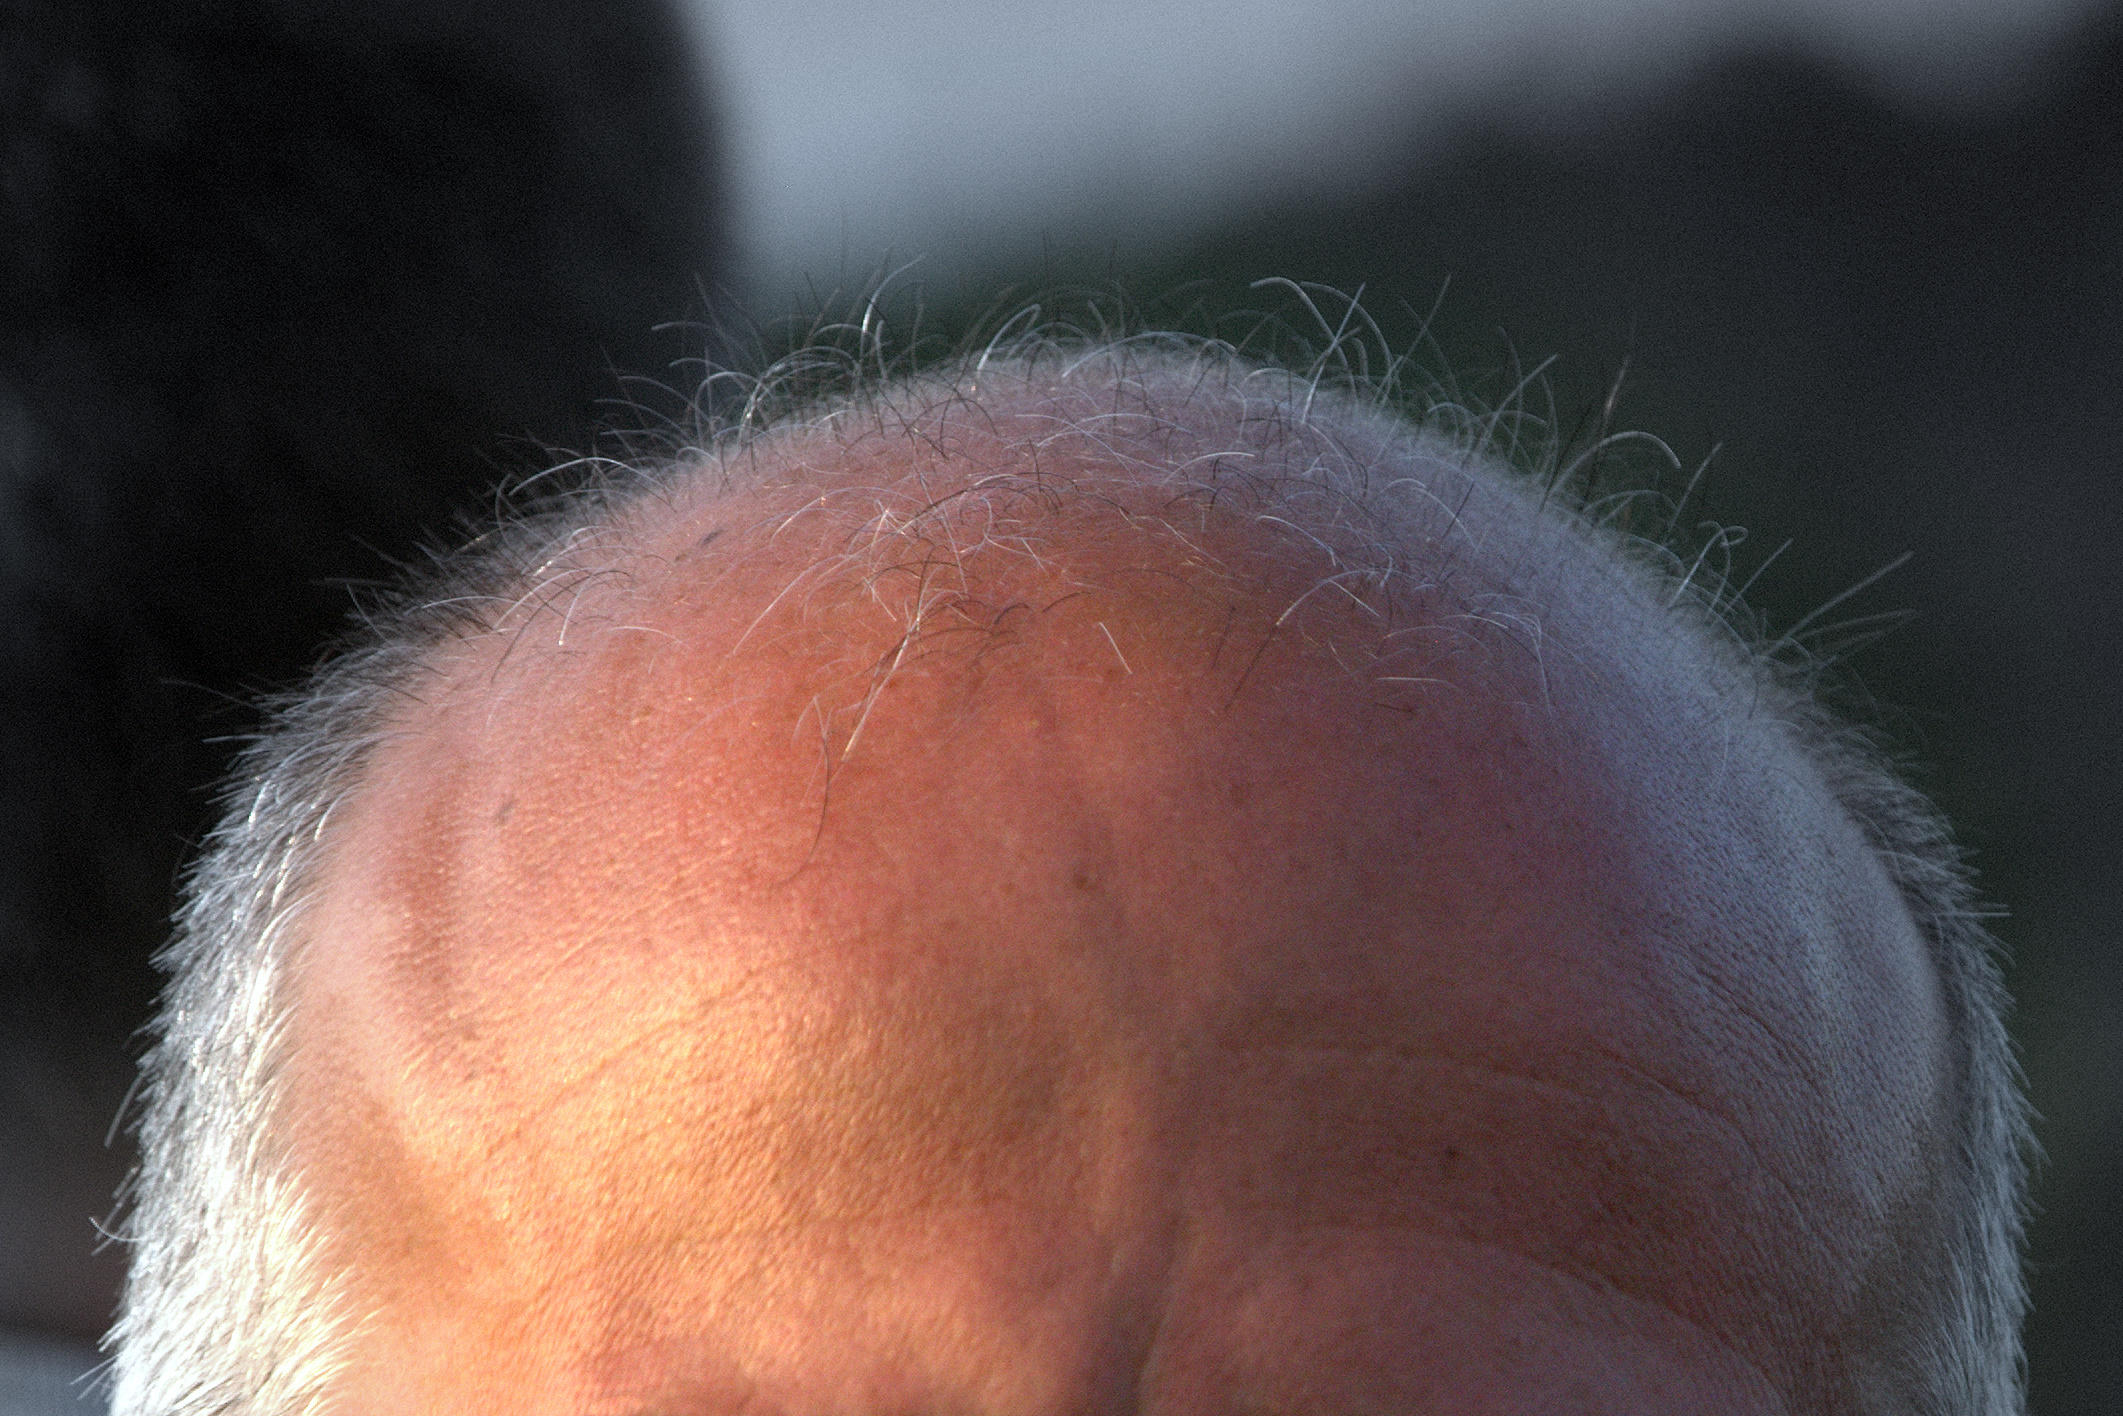 Persistent sexual side effects of finasteride for male pattern hair loss